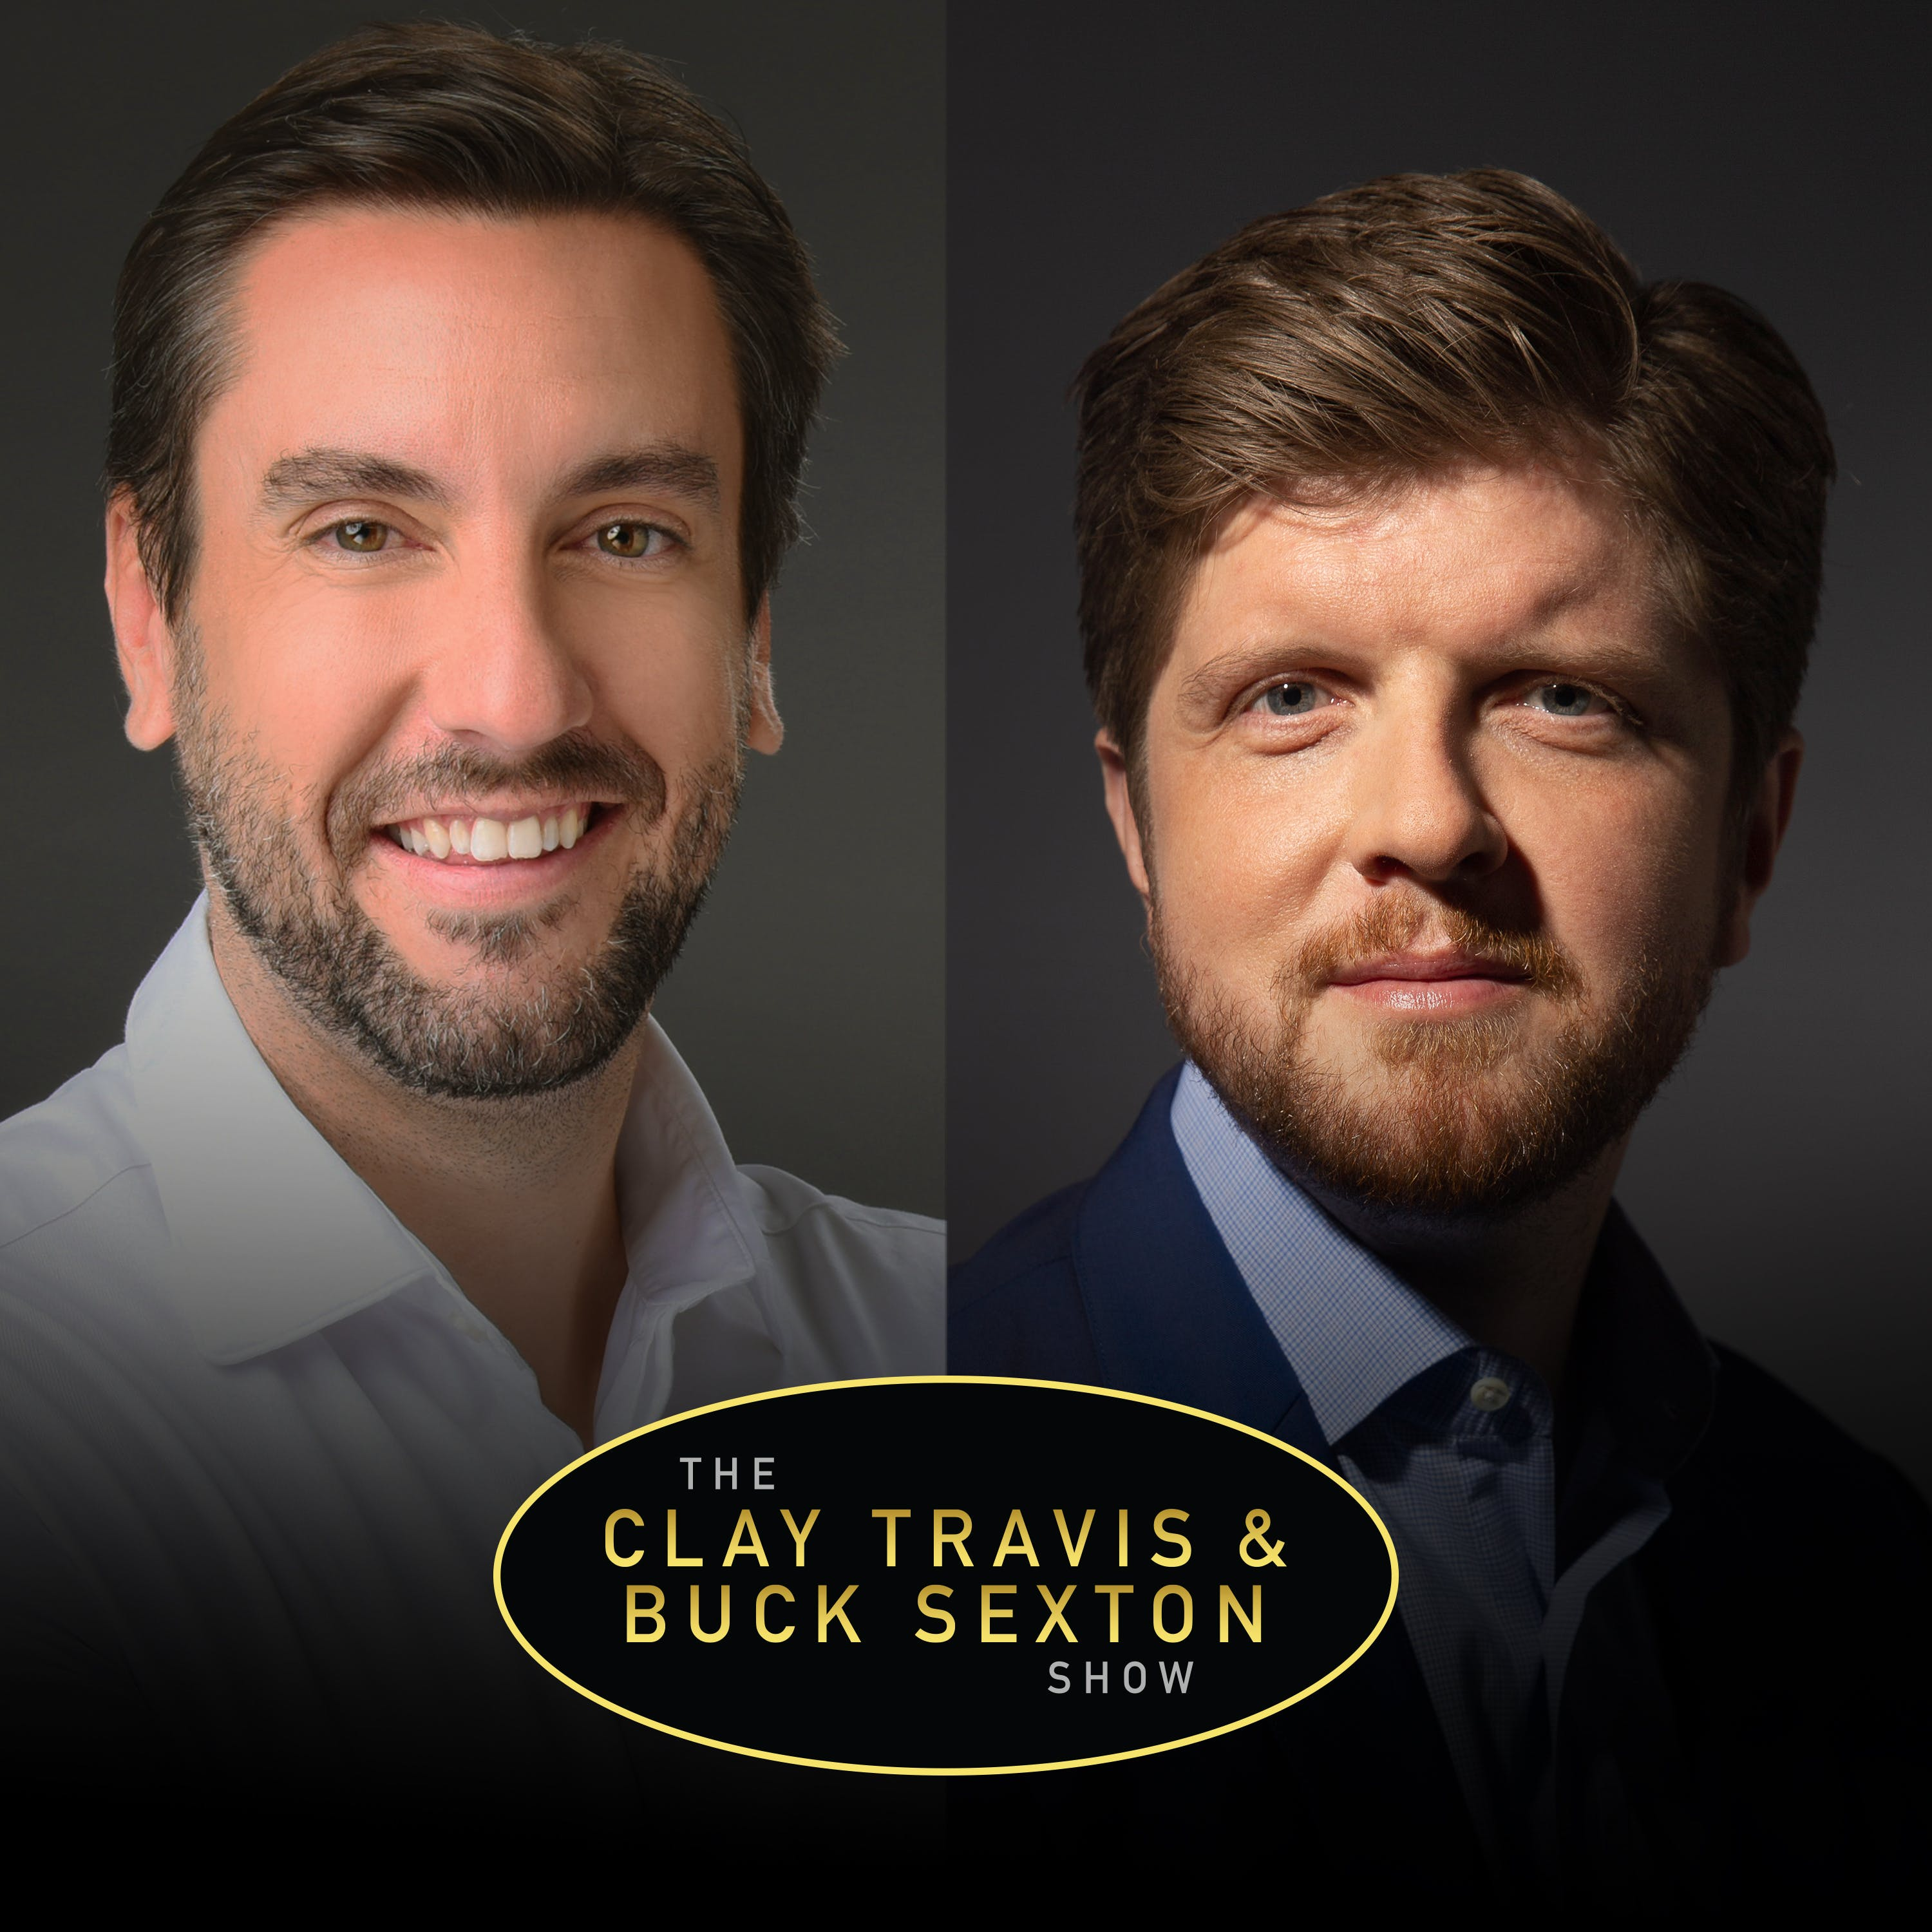 Clay Travis and Buck Sexton Show H1 – Jul 23 2021